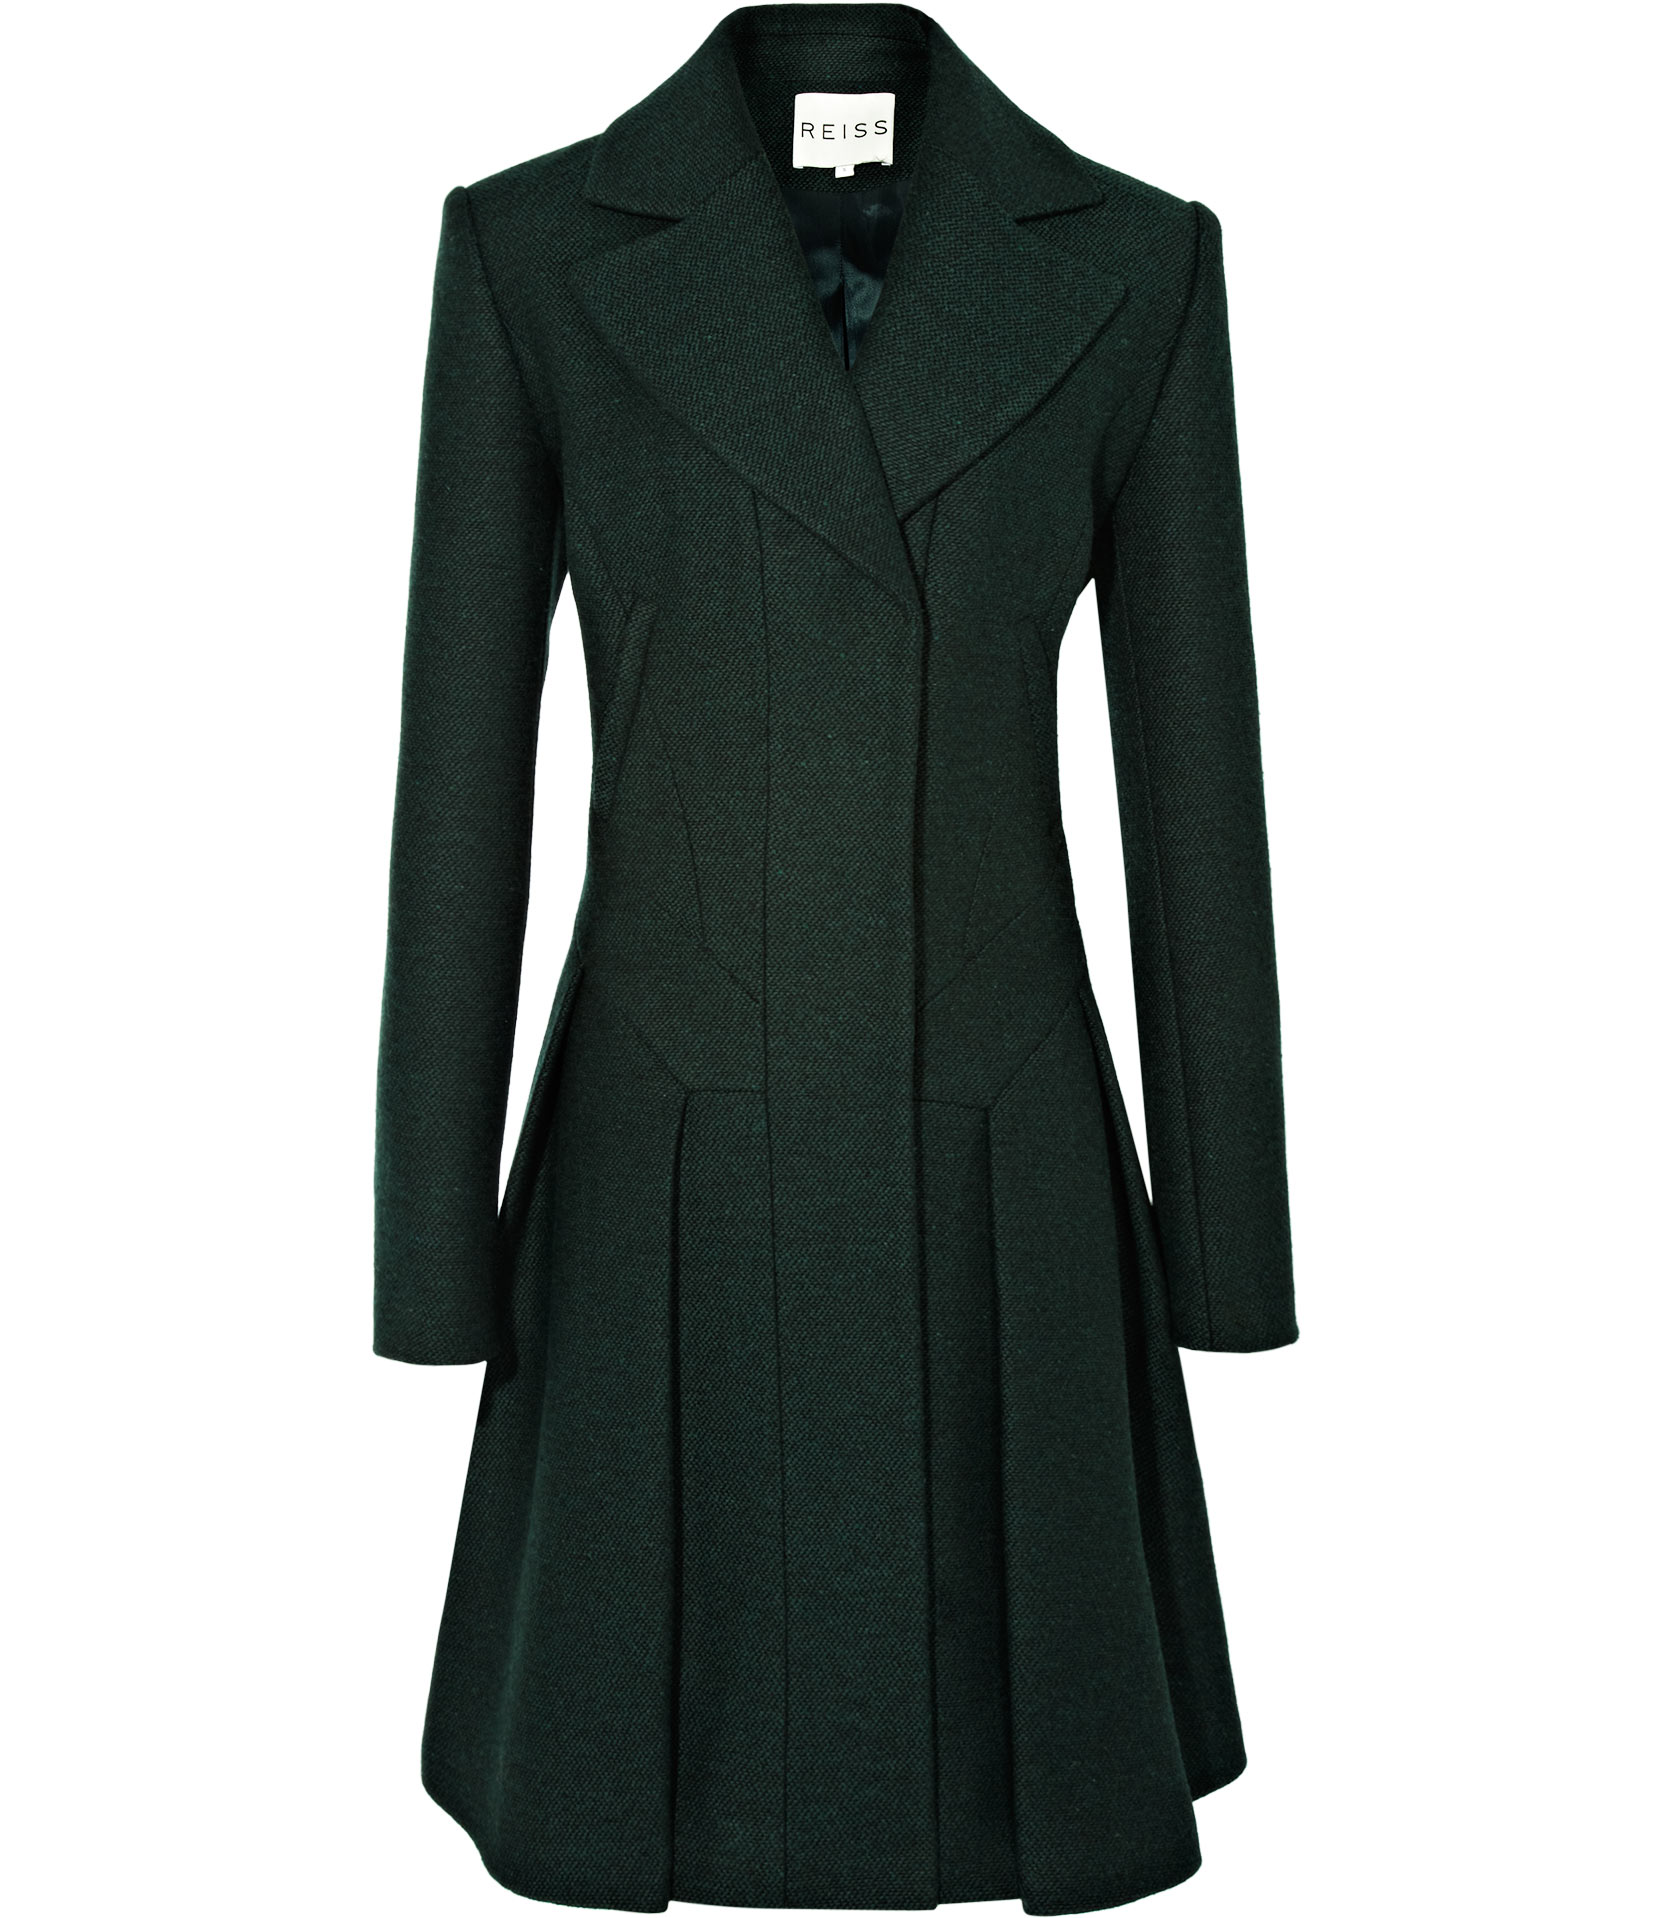 Reiss Fit And Flare Coat In Green Lyst